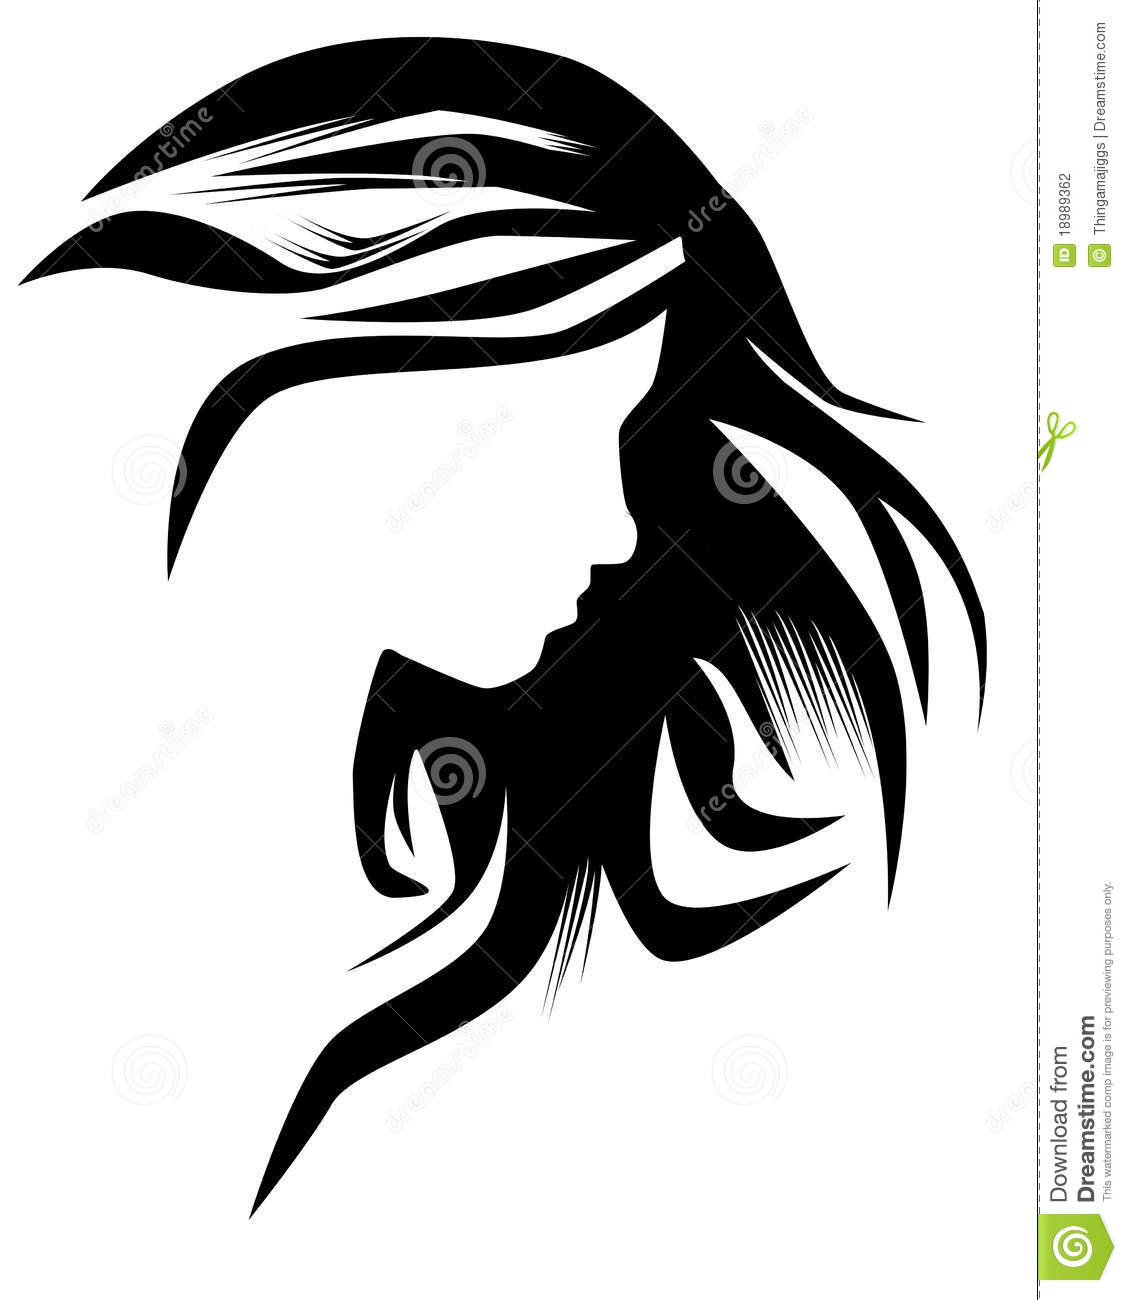 Hairstyle Stock Photography Image 18989362